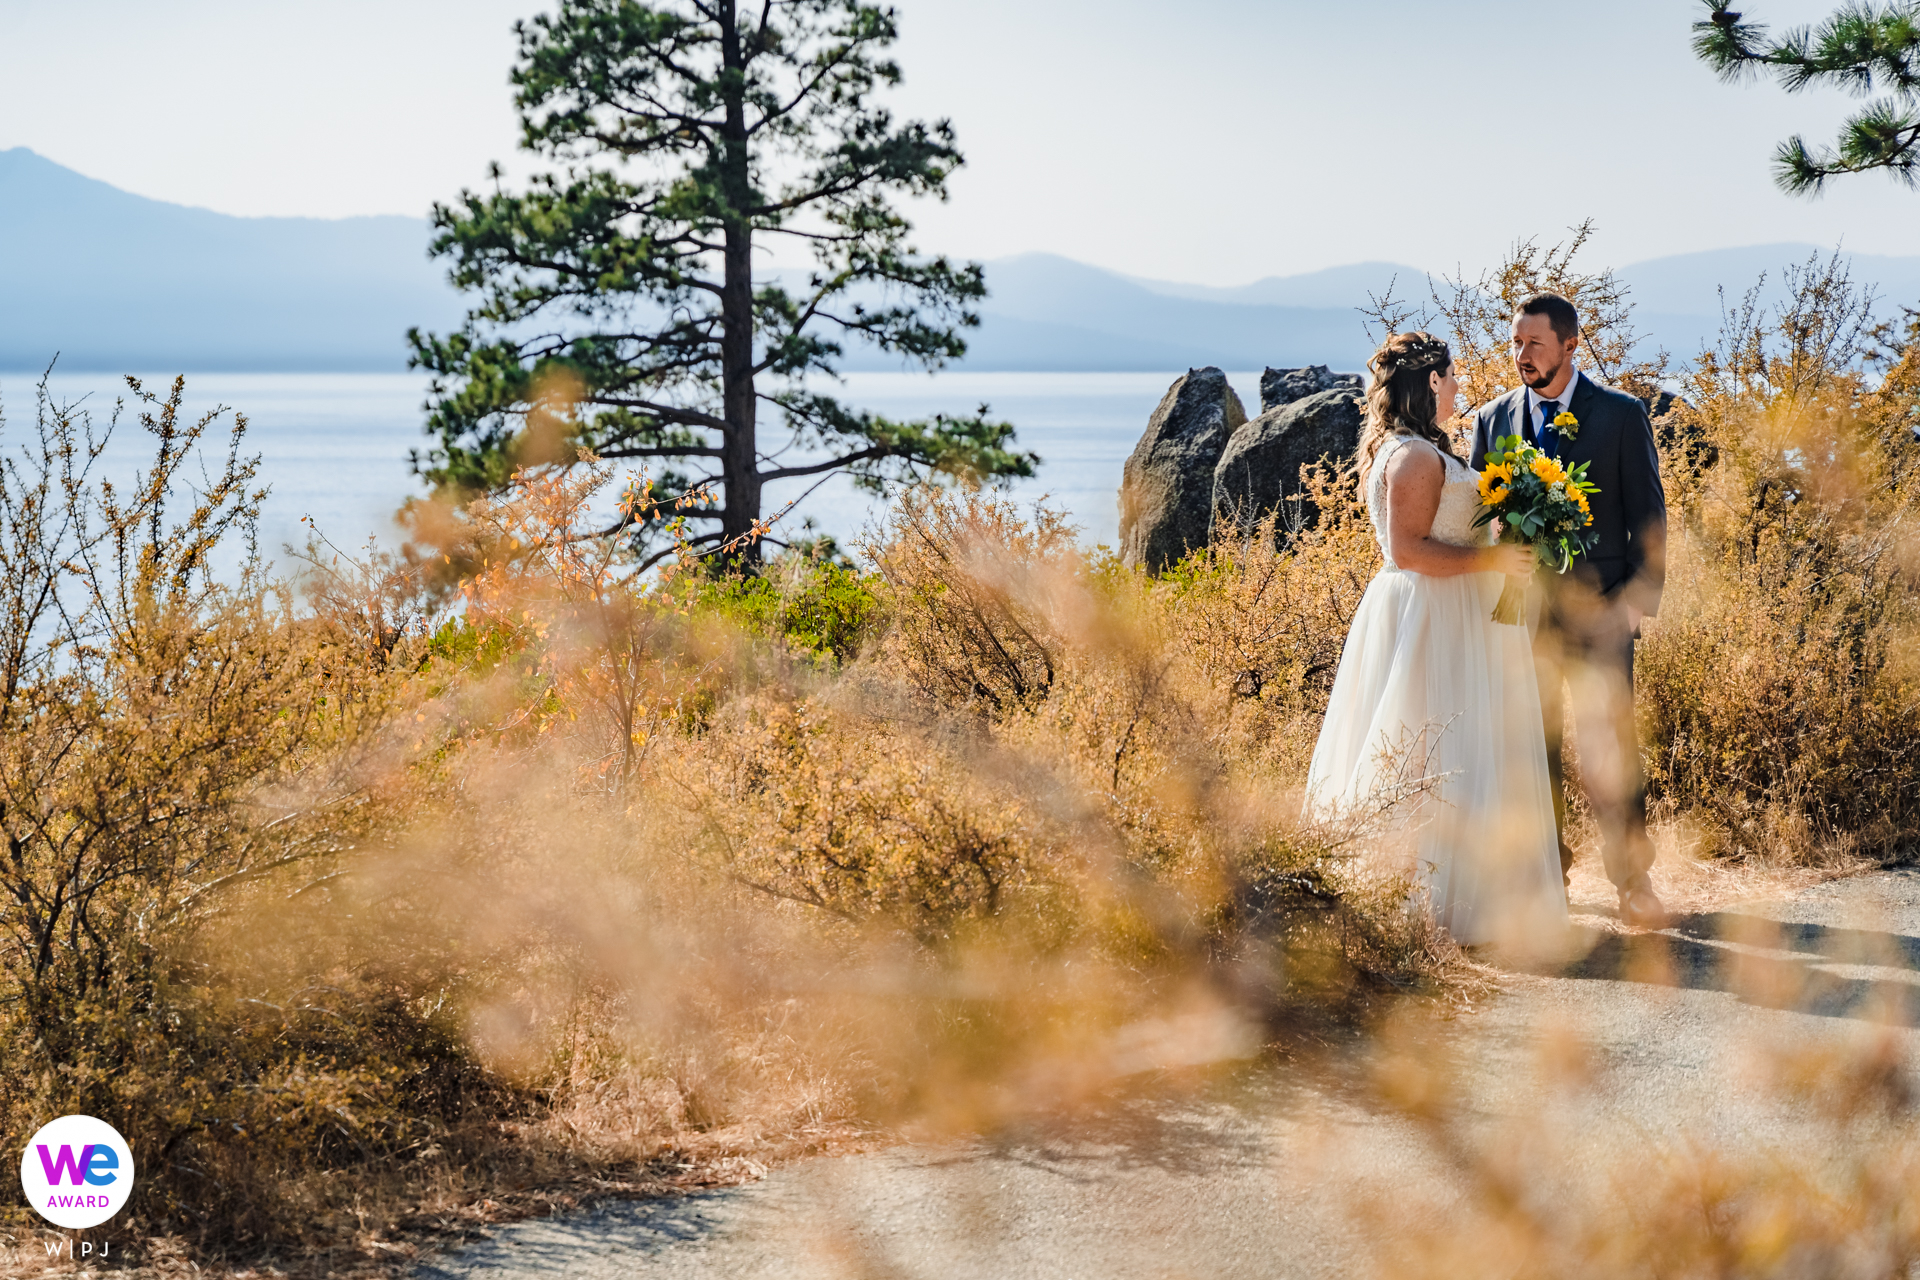 Zephyr Cove, NV Wedding Couple Image | The bride and groom share a few minutes together before the outdoor ceremony